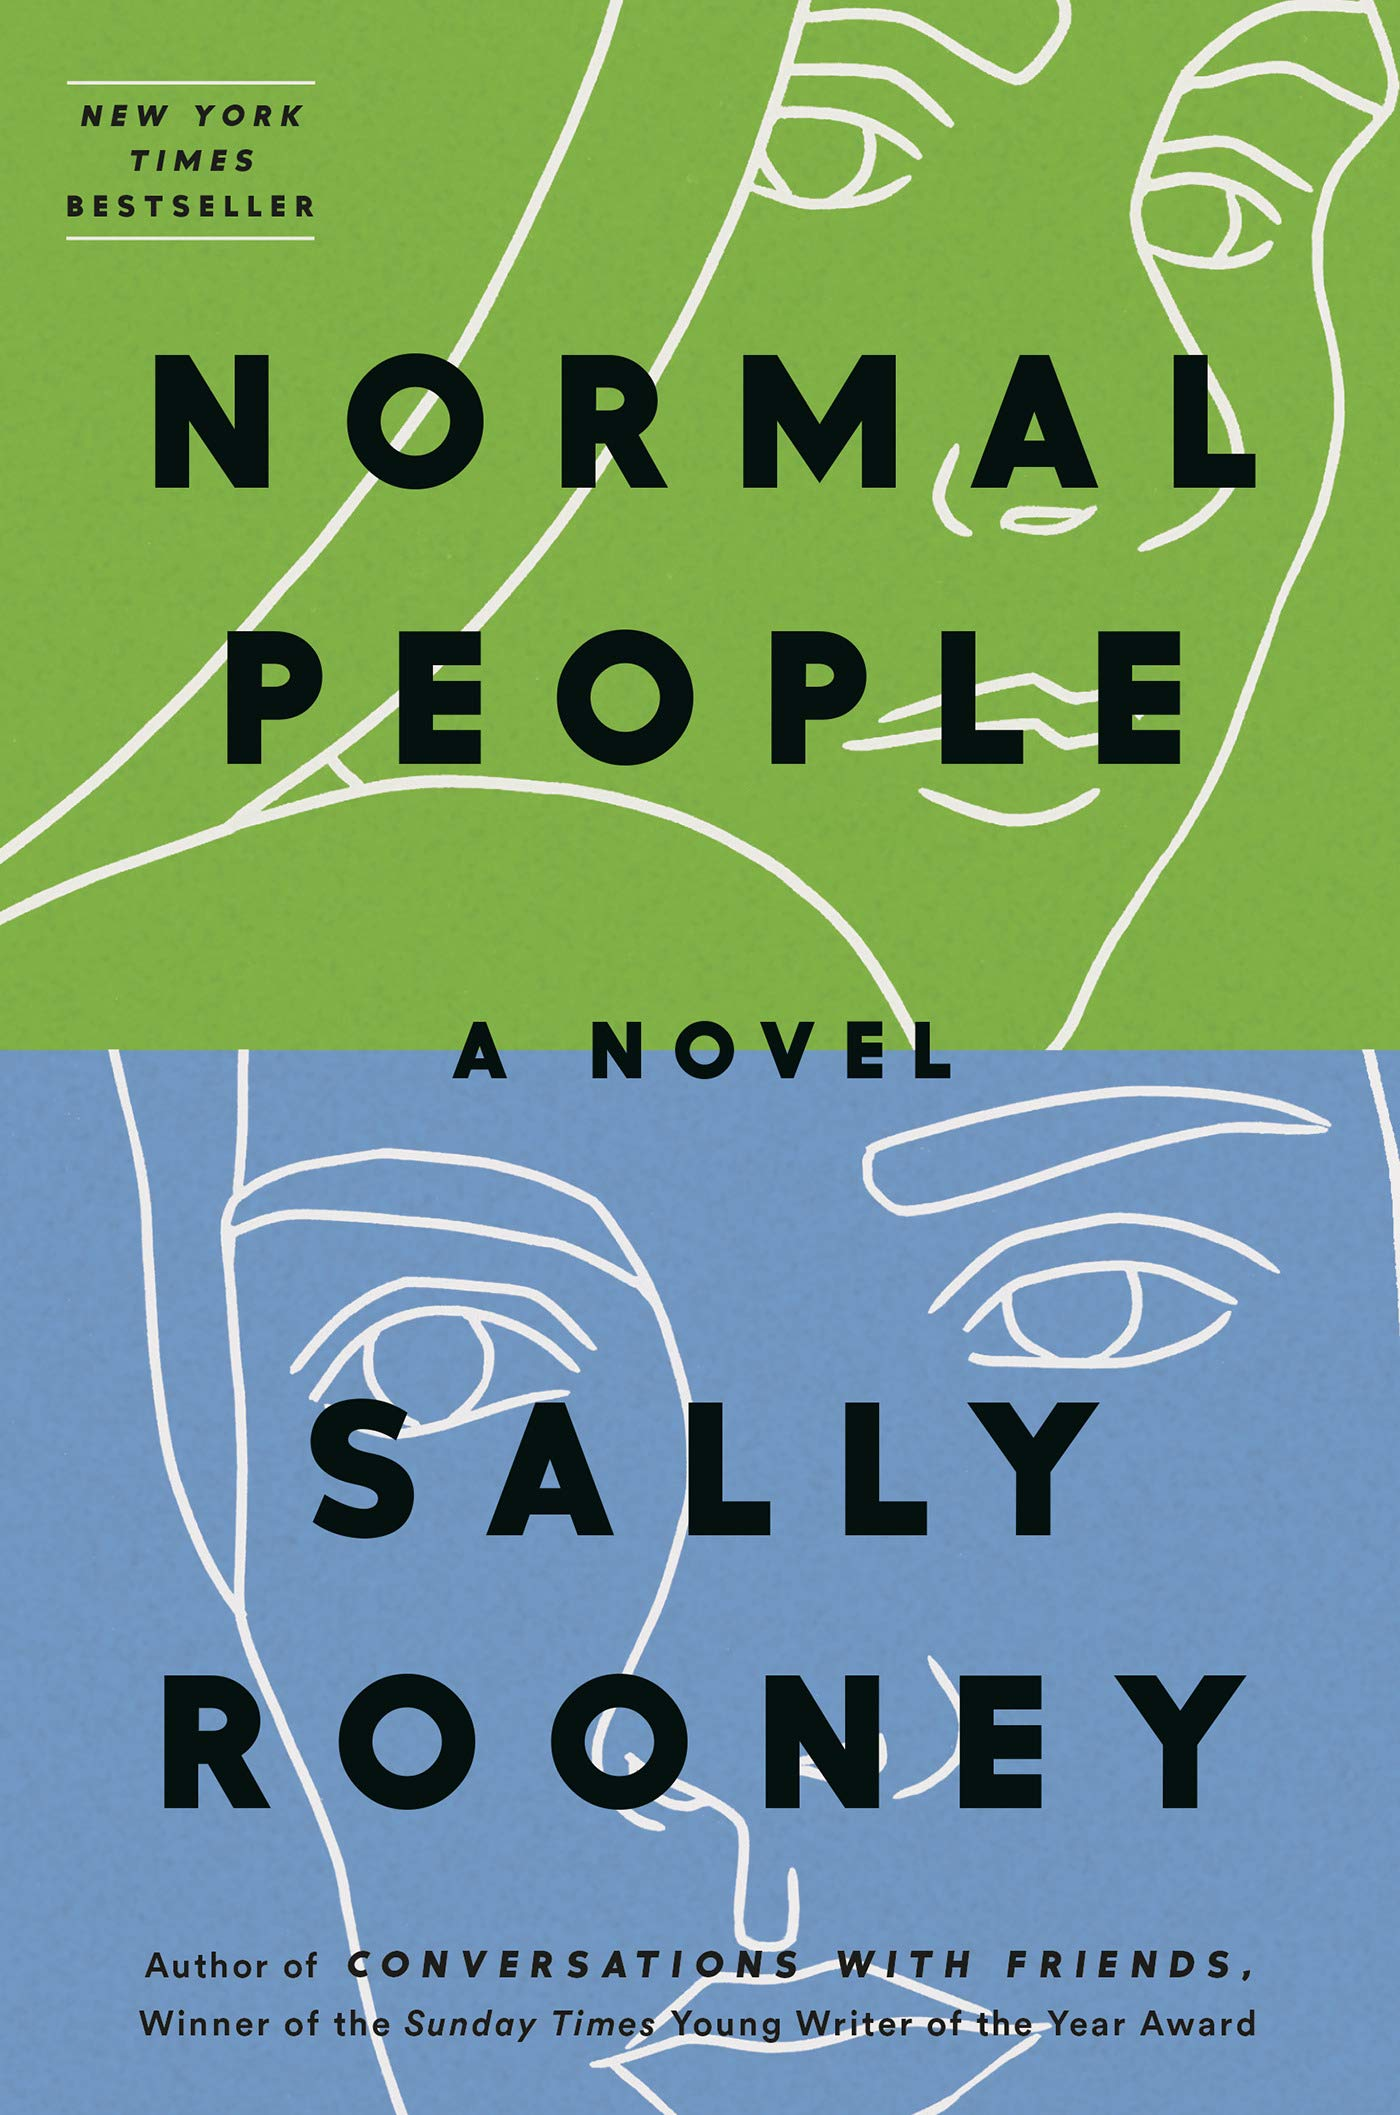 Dumbo Lit Book Club: Normal People by Sally Rooney